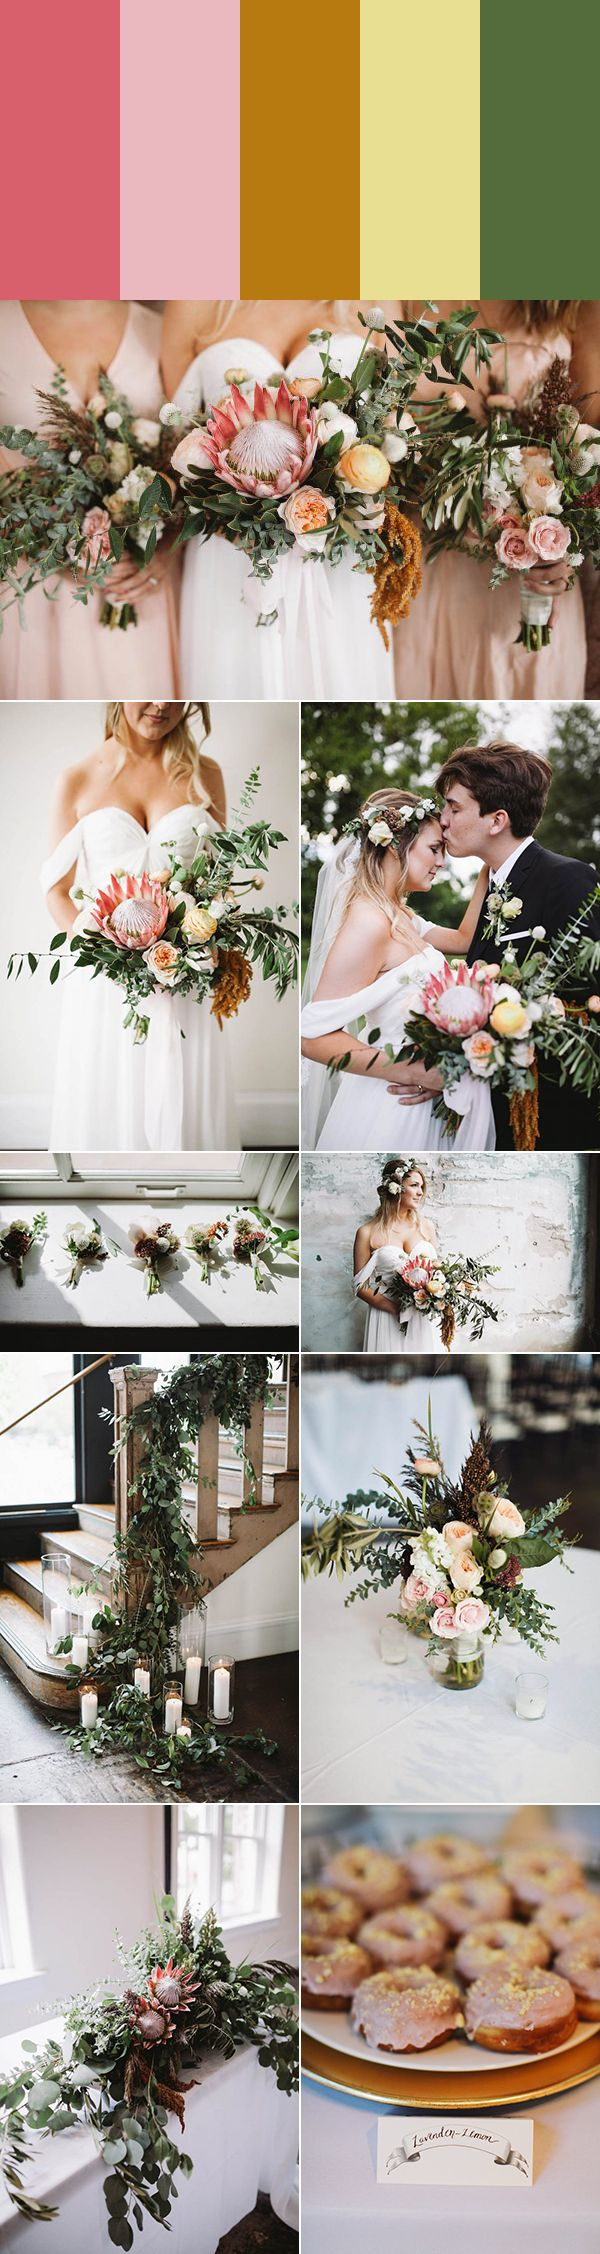 Dusty rose, petal pink, goldenrod, lemon glaze + eucalyptus | Images by Sanford Creative